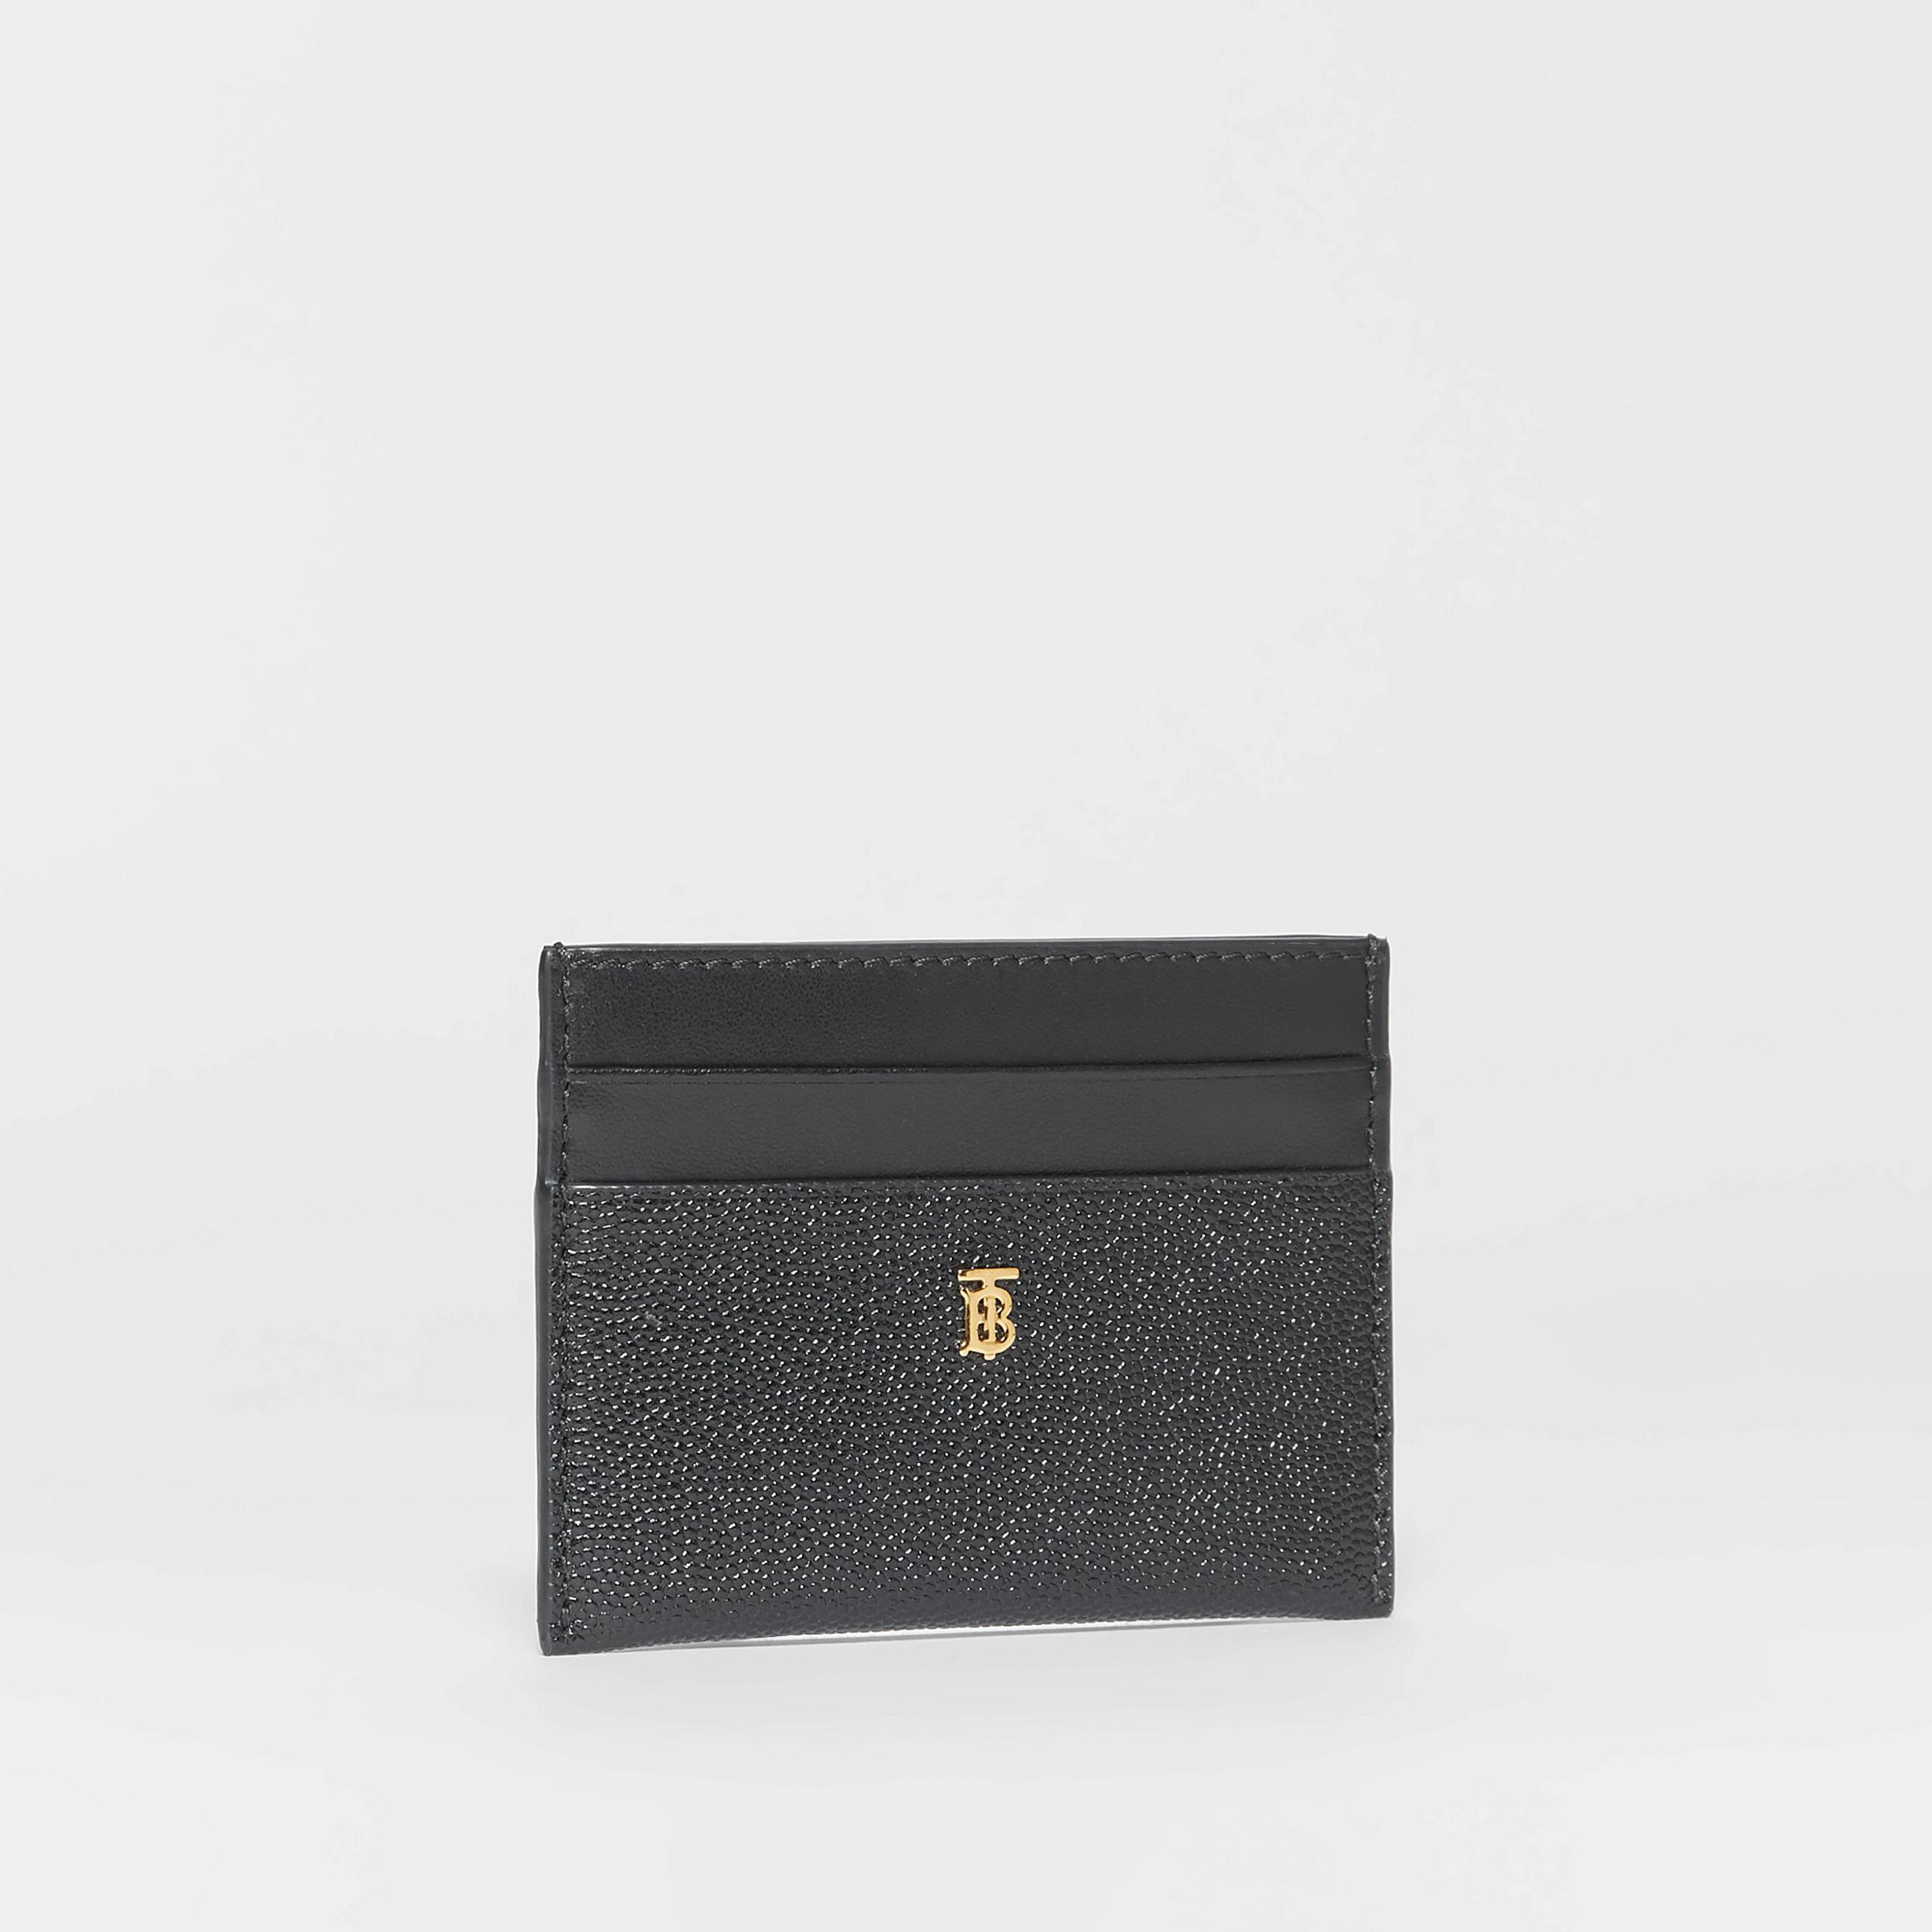 Monogram Motif Leather Card Case in Black - Women | Burberry - 4